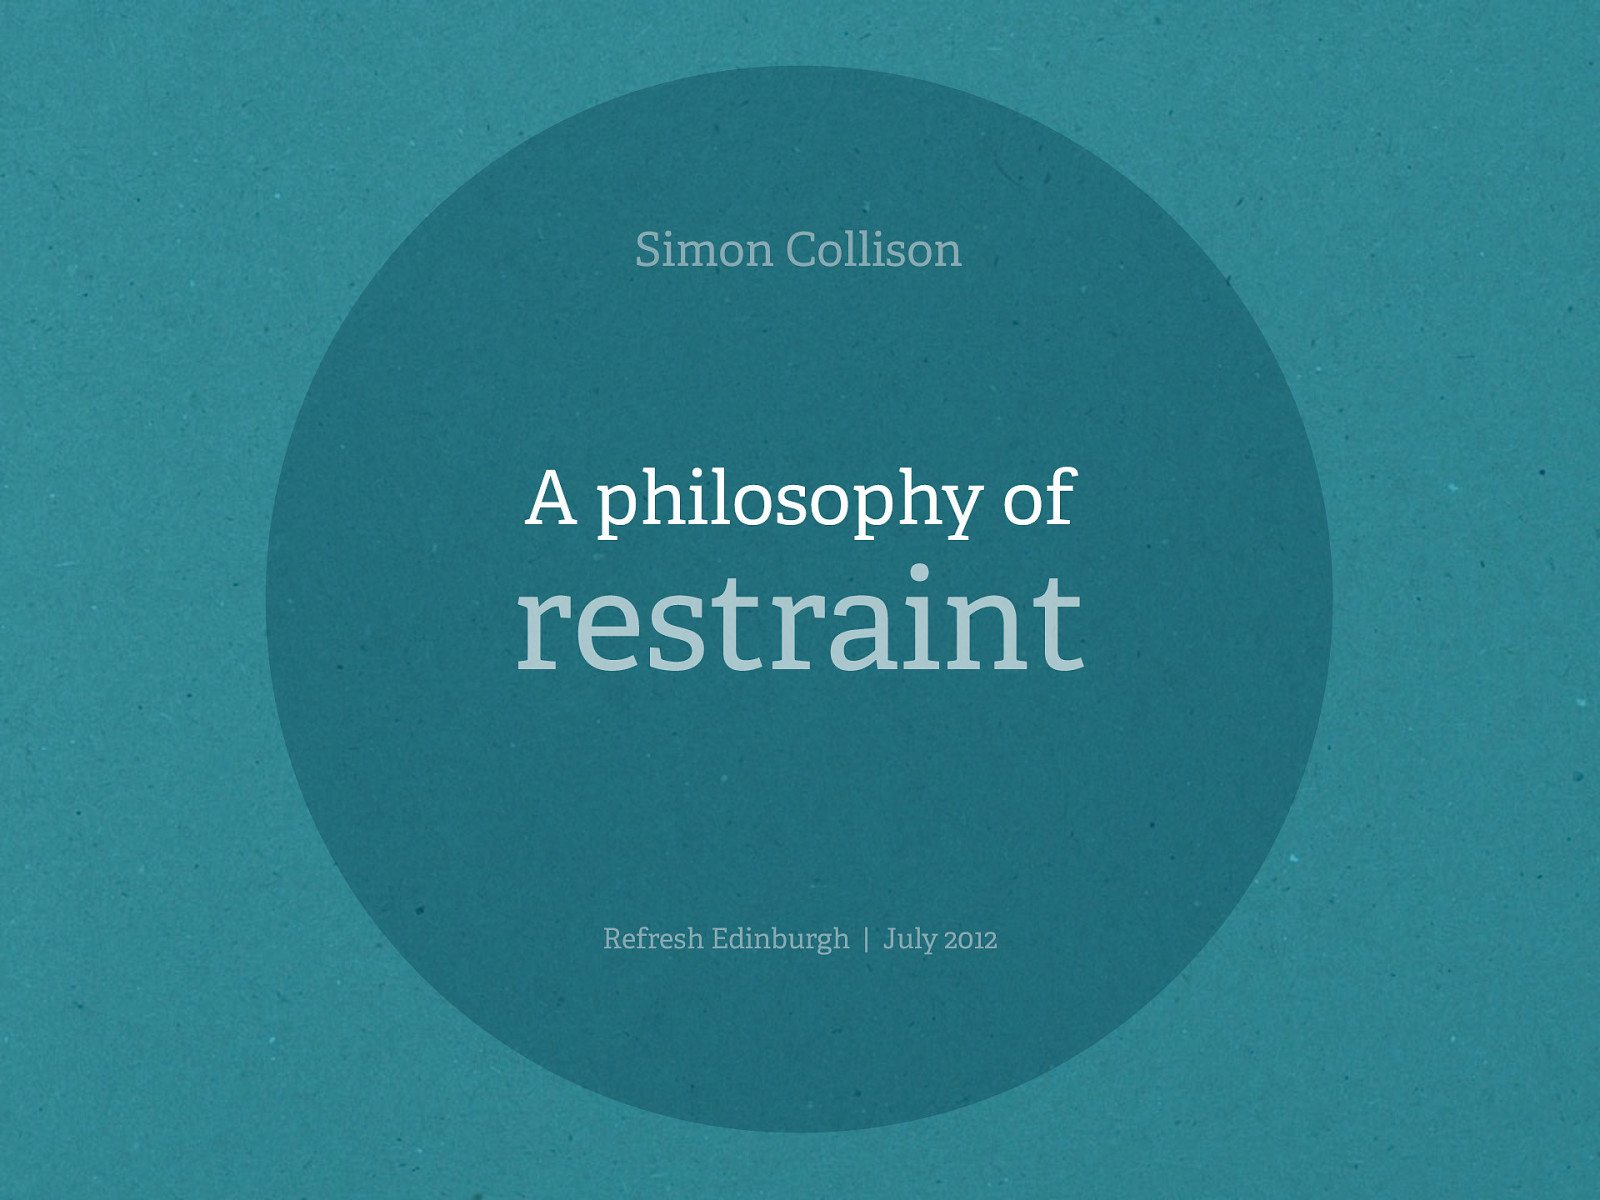 A philosophy of restraint